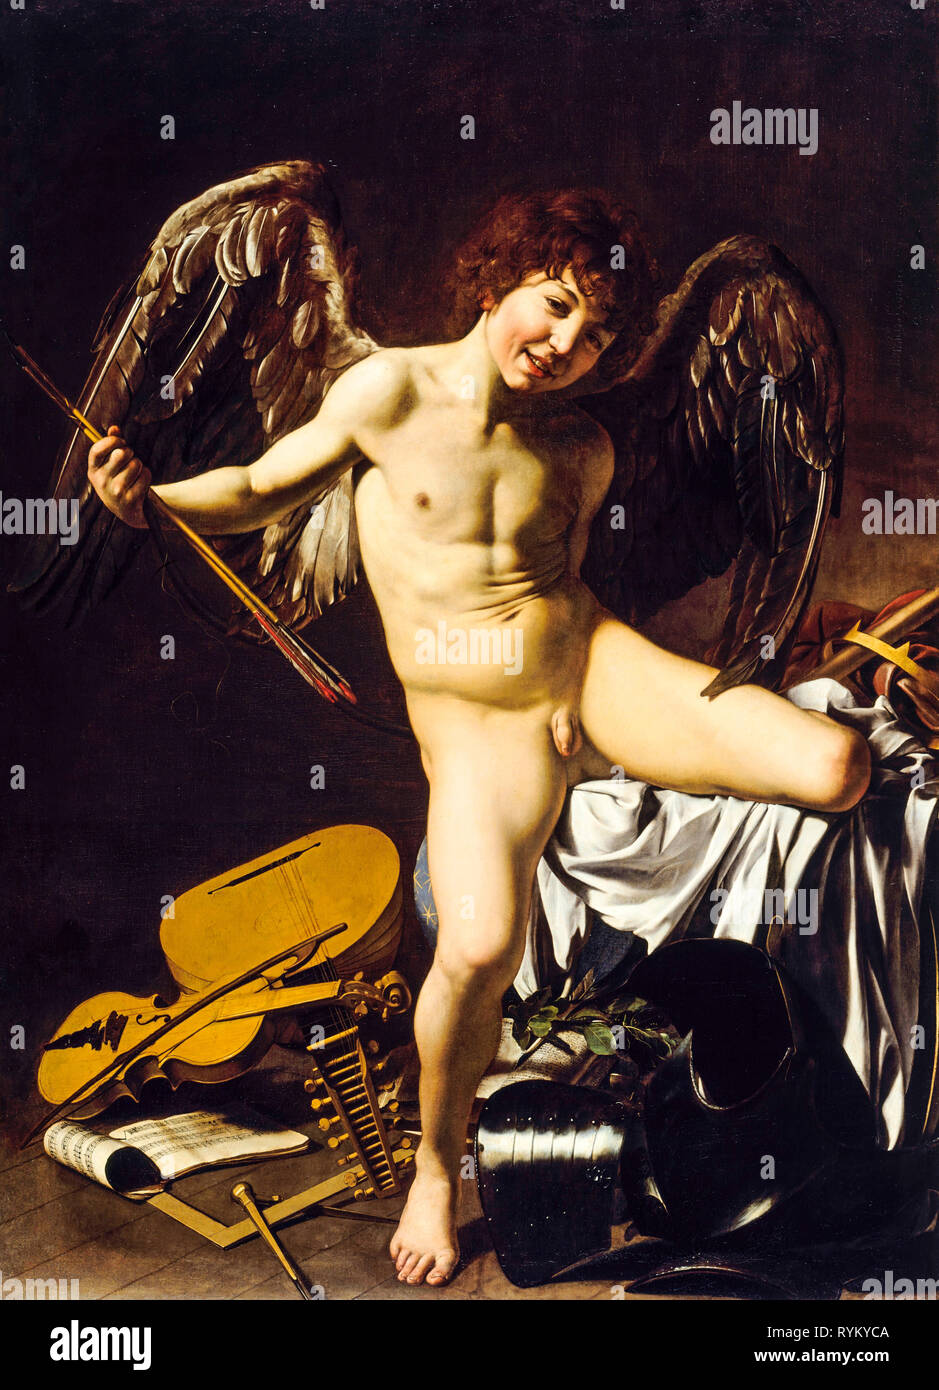 Amor Victorious, Caravaggio, c. 1602, Cupid painting - Stock Image